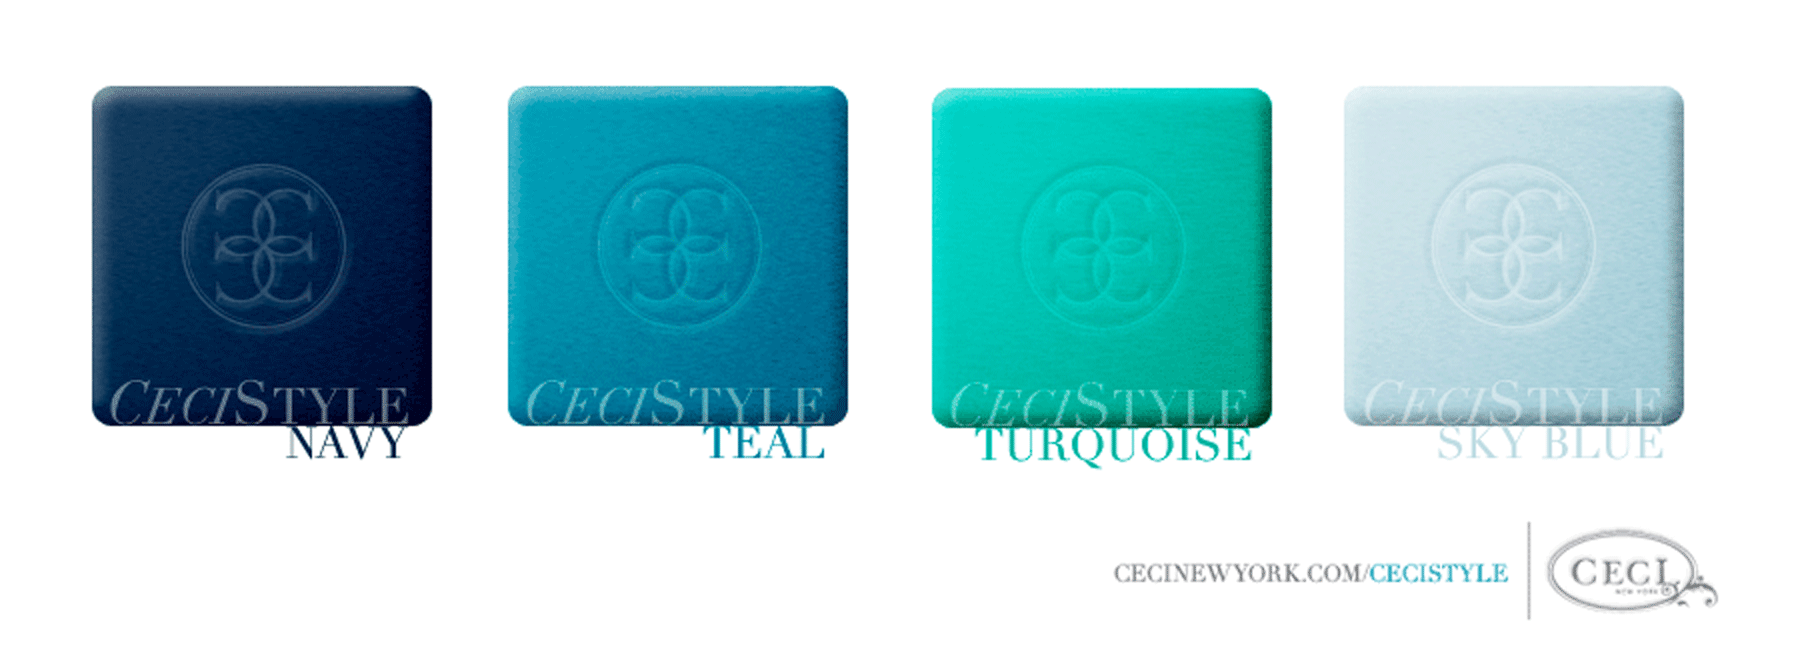 Ceci's Color Stories - Navy & Teal Wedding Colors - color swatches, navy, teal, turquoise, sky blue, wedding